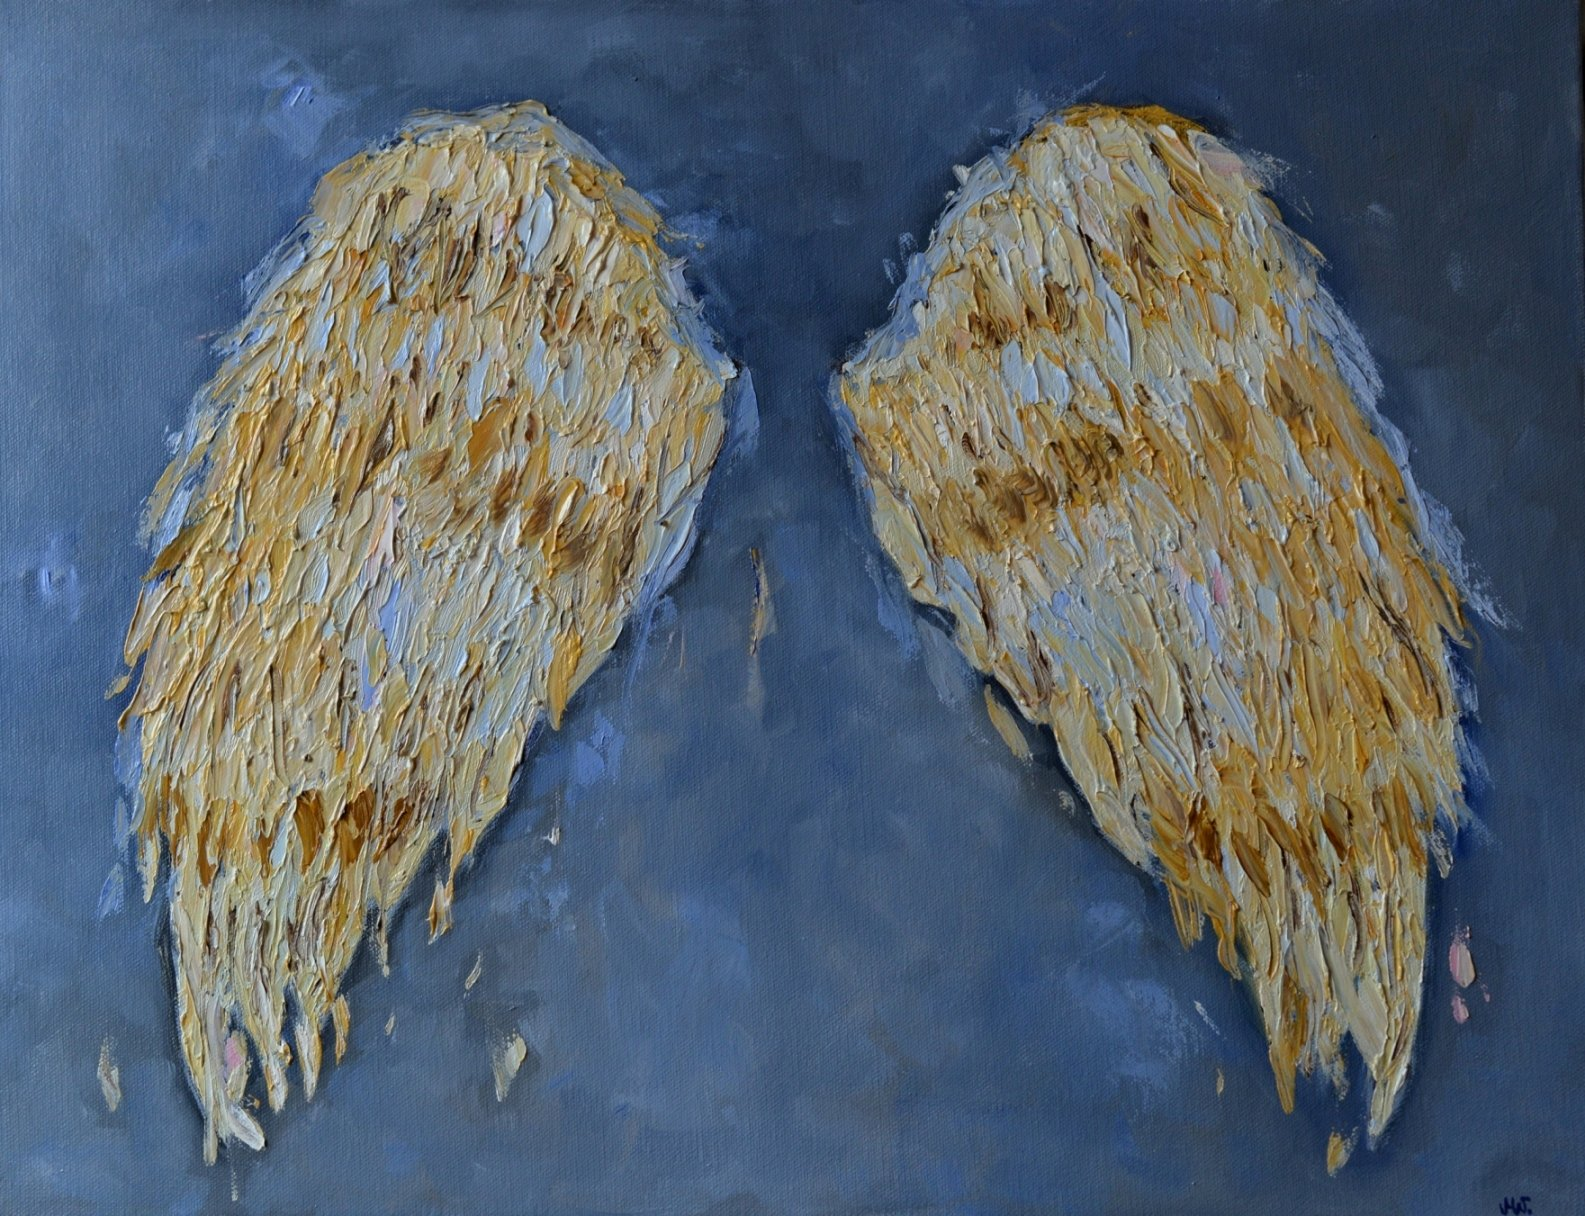 Angel Wings Painting Grey Gray Art CANVAS Artwork Wall Decor Decal Textured Gold Living Room Bedroom Christmas Gift Original Oil 19x25